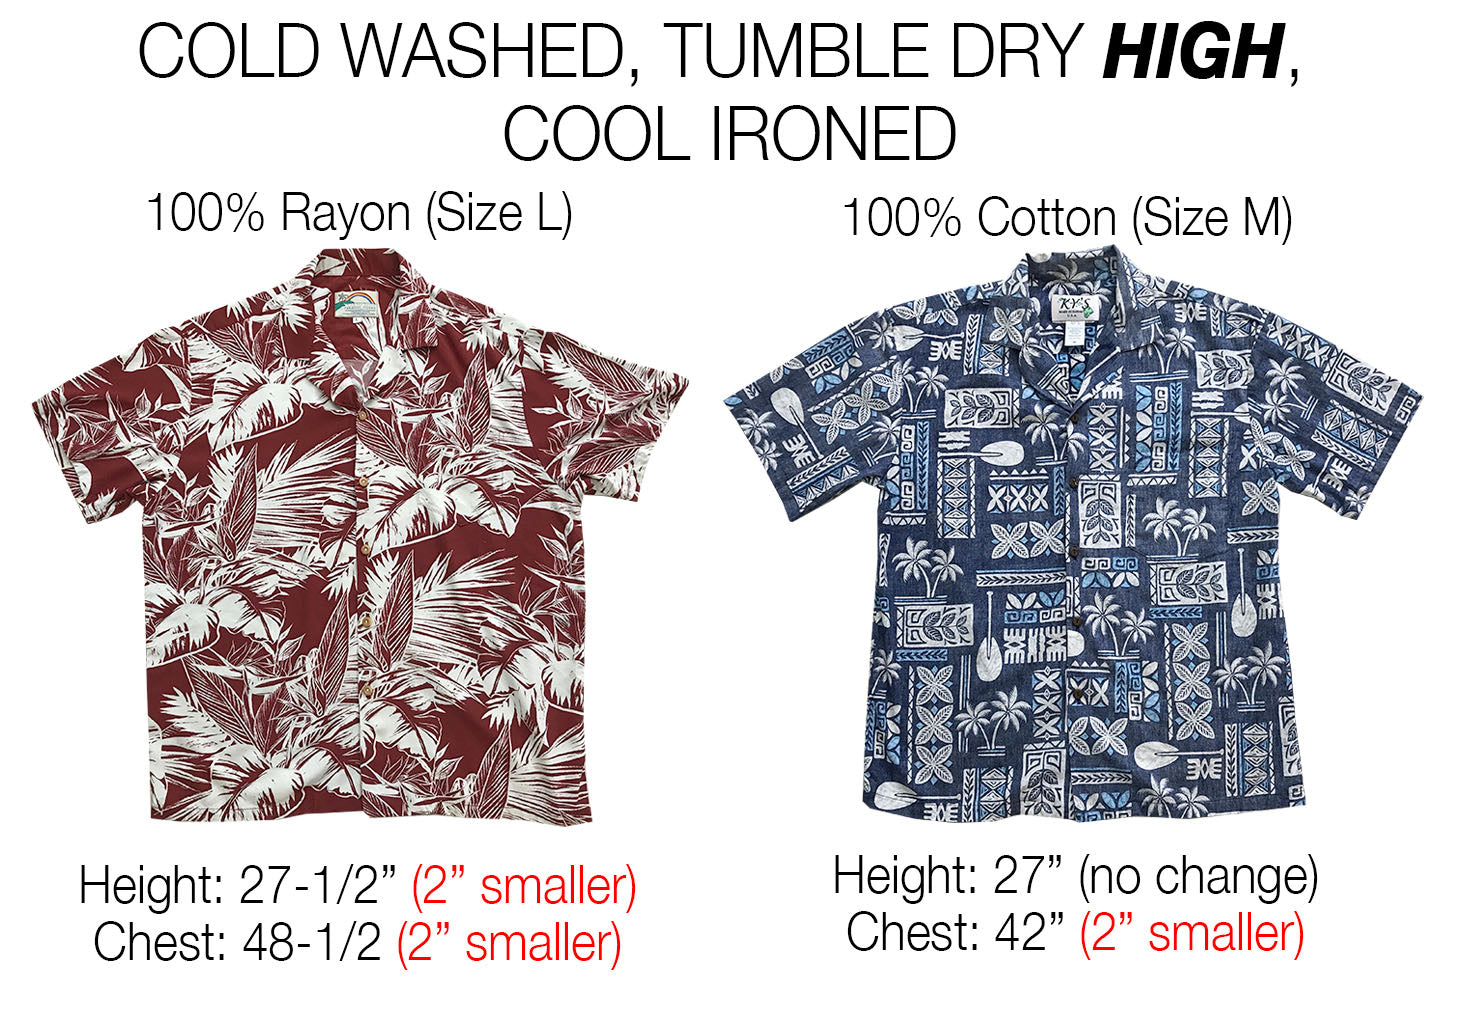 Hawaiian shirts measured after tumble dry high